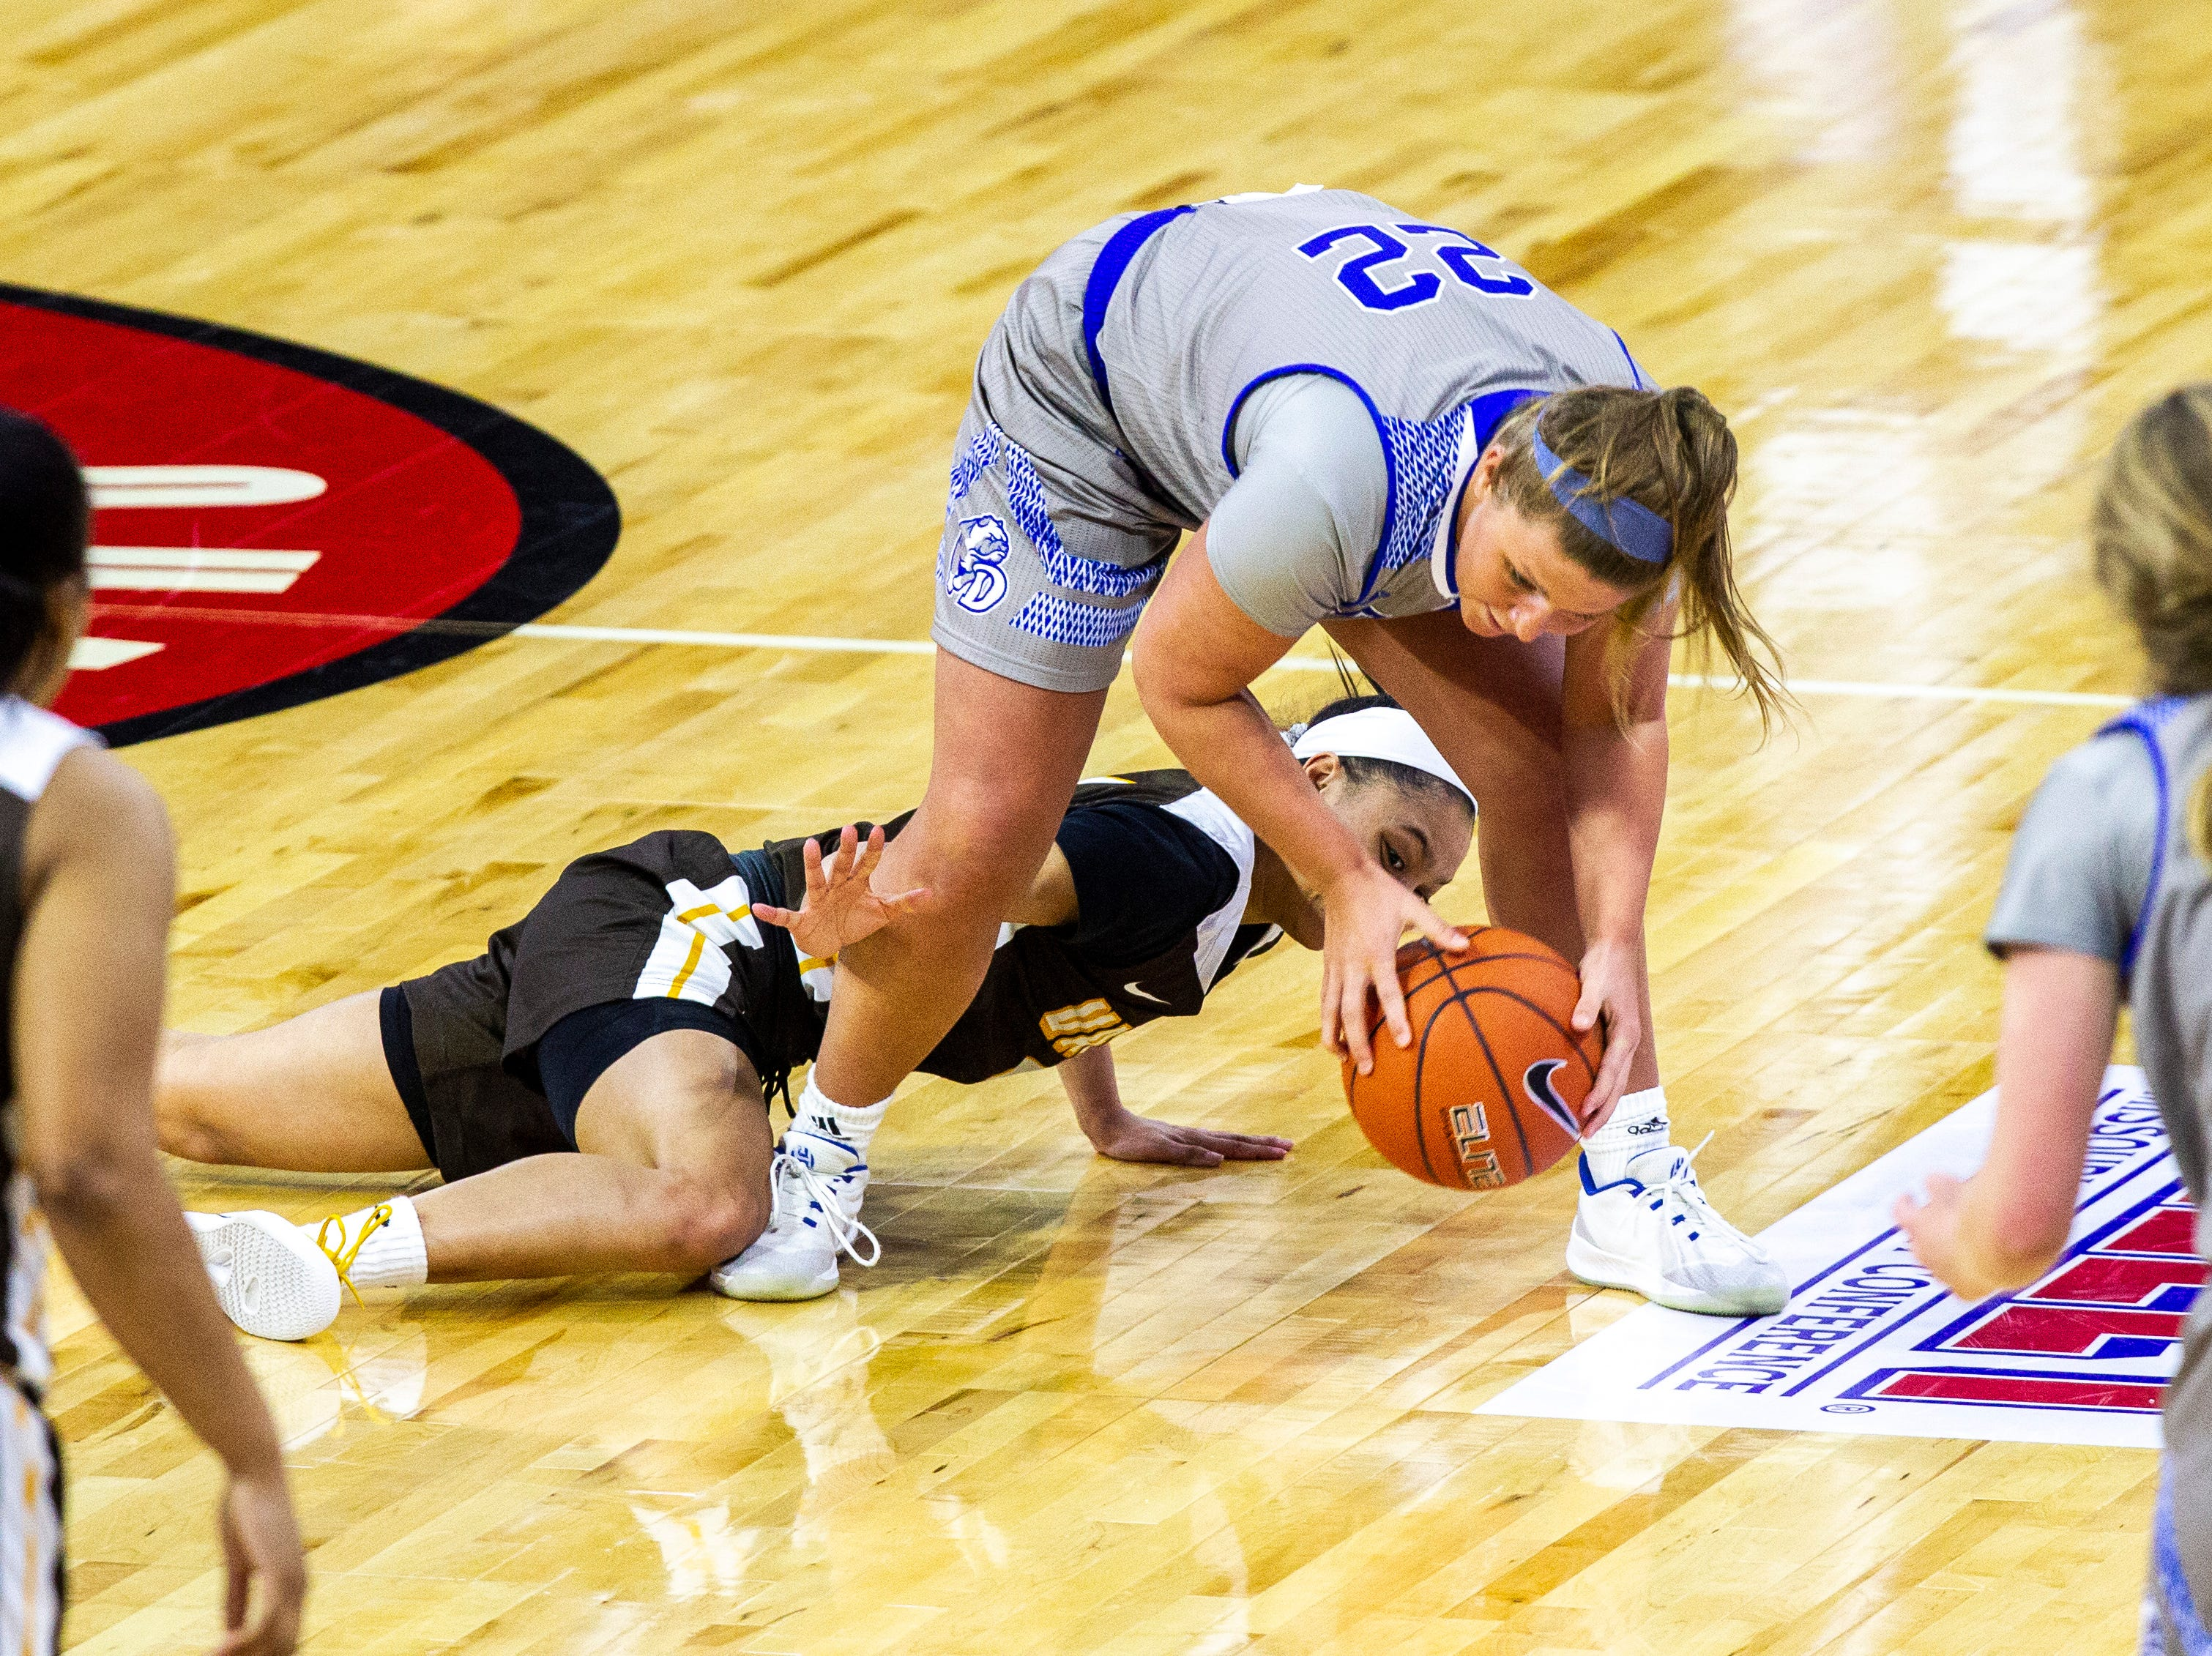 Drake guard Hannah Fuller (22) grabs a loose ball away from Valparaiso guard Ilysse Pitts (4) during a NCAA Missouri Valley Conference women's basketball quarterfinal tournament game, Friday, March 15, 2019, at the TaxSlayer Center in Moline, Illinois.